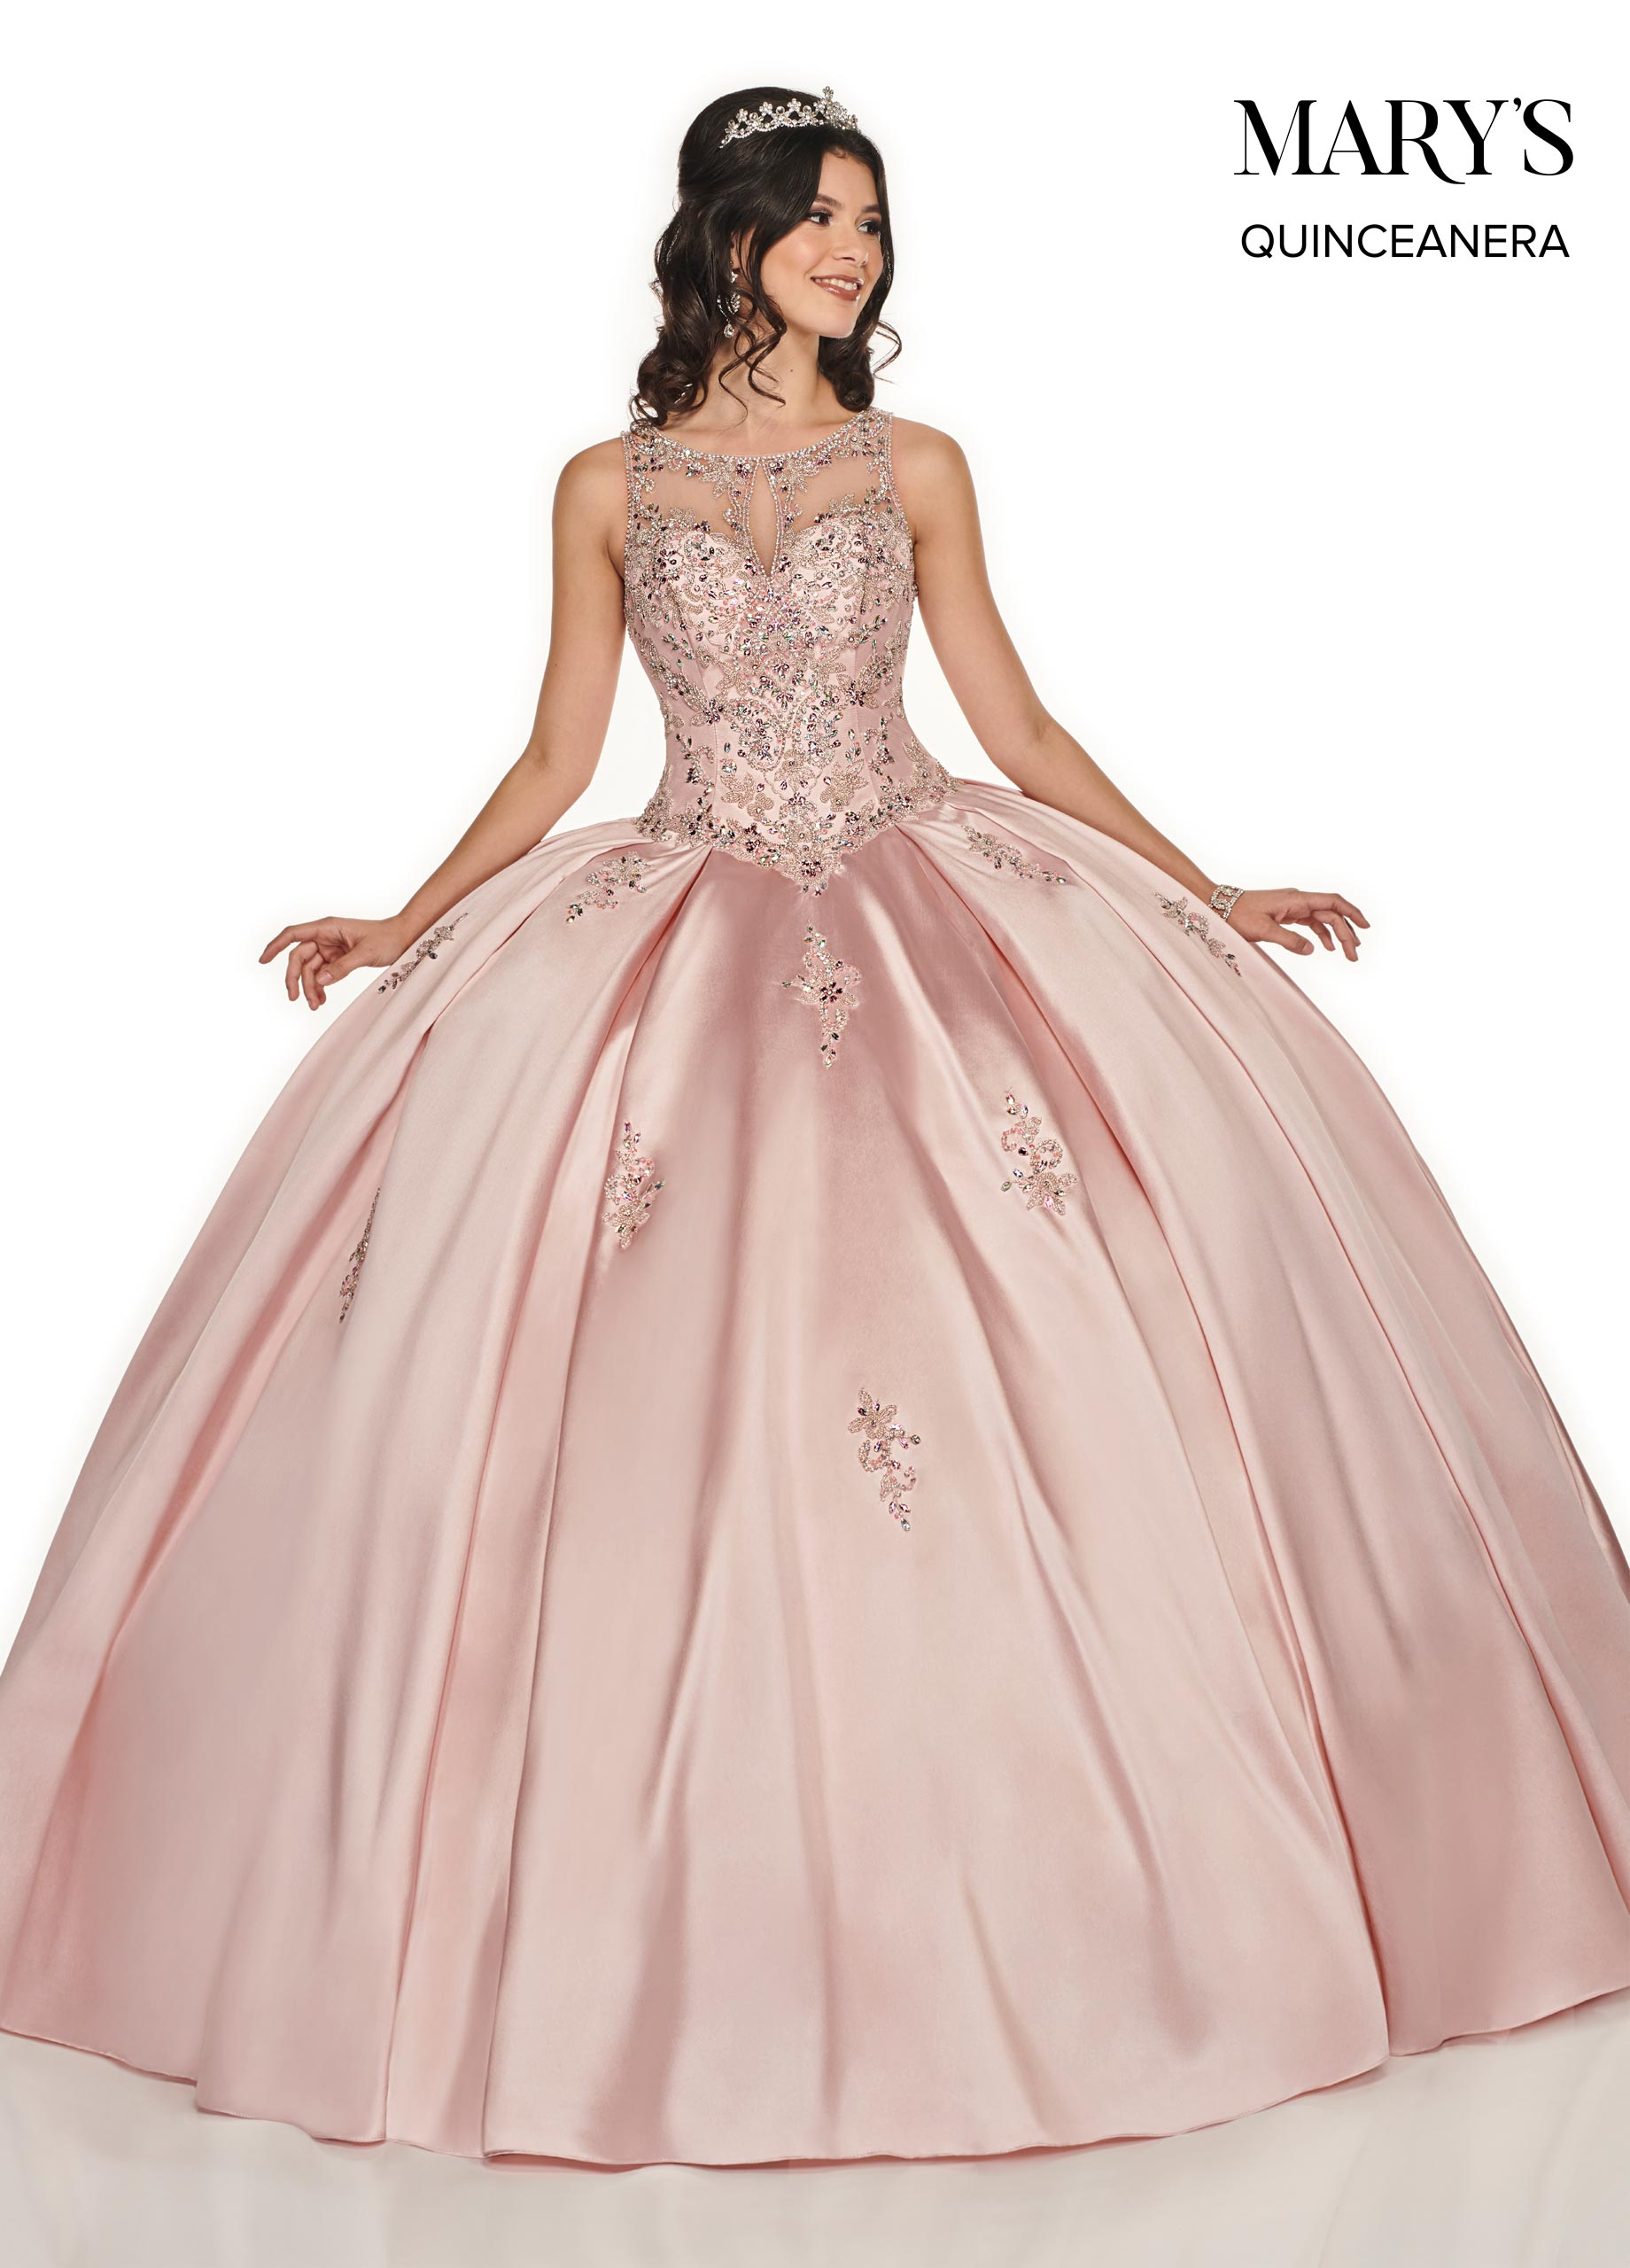 Marys Quinceanera Dresses | Mary's Quinceanera | Style - MQ2078